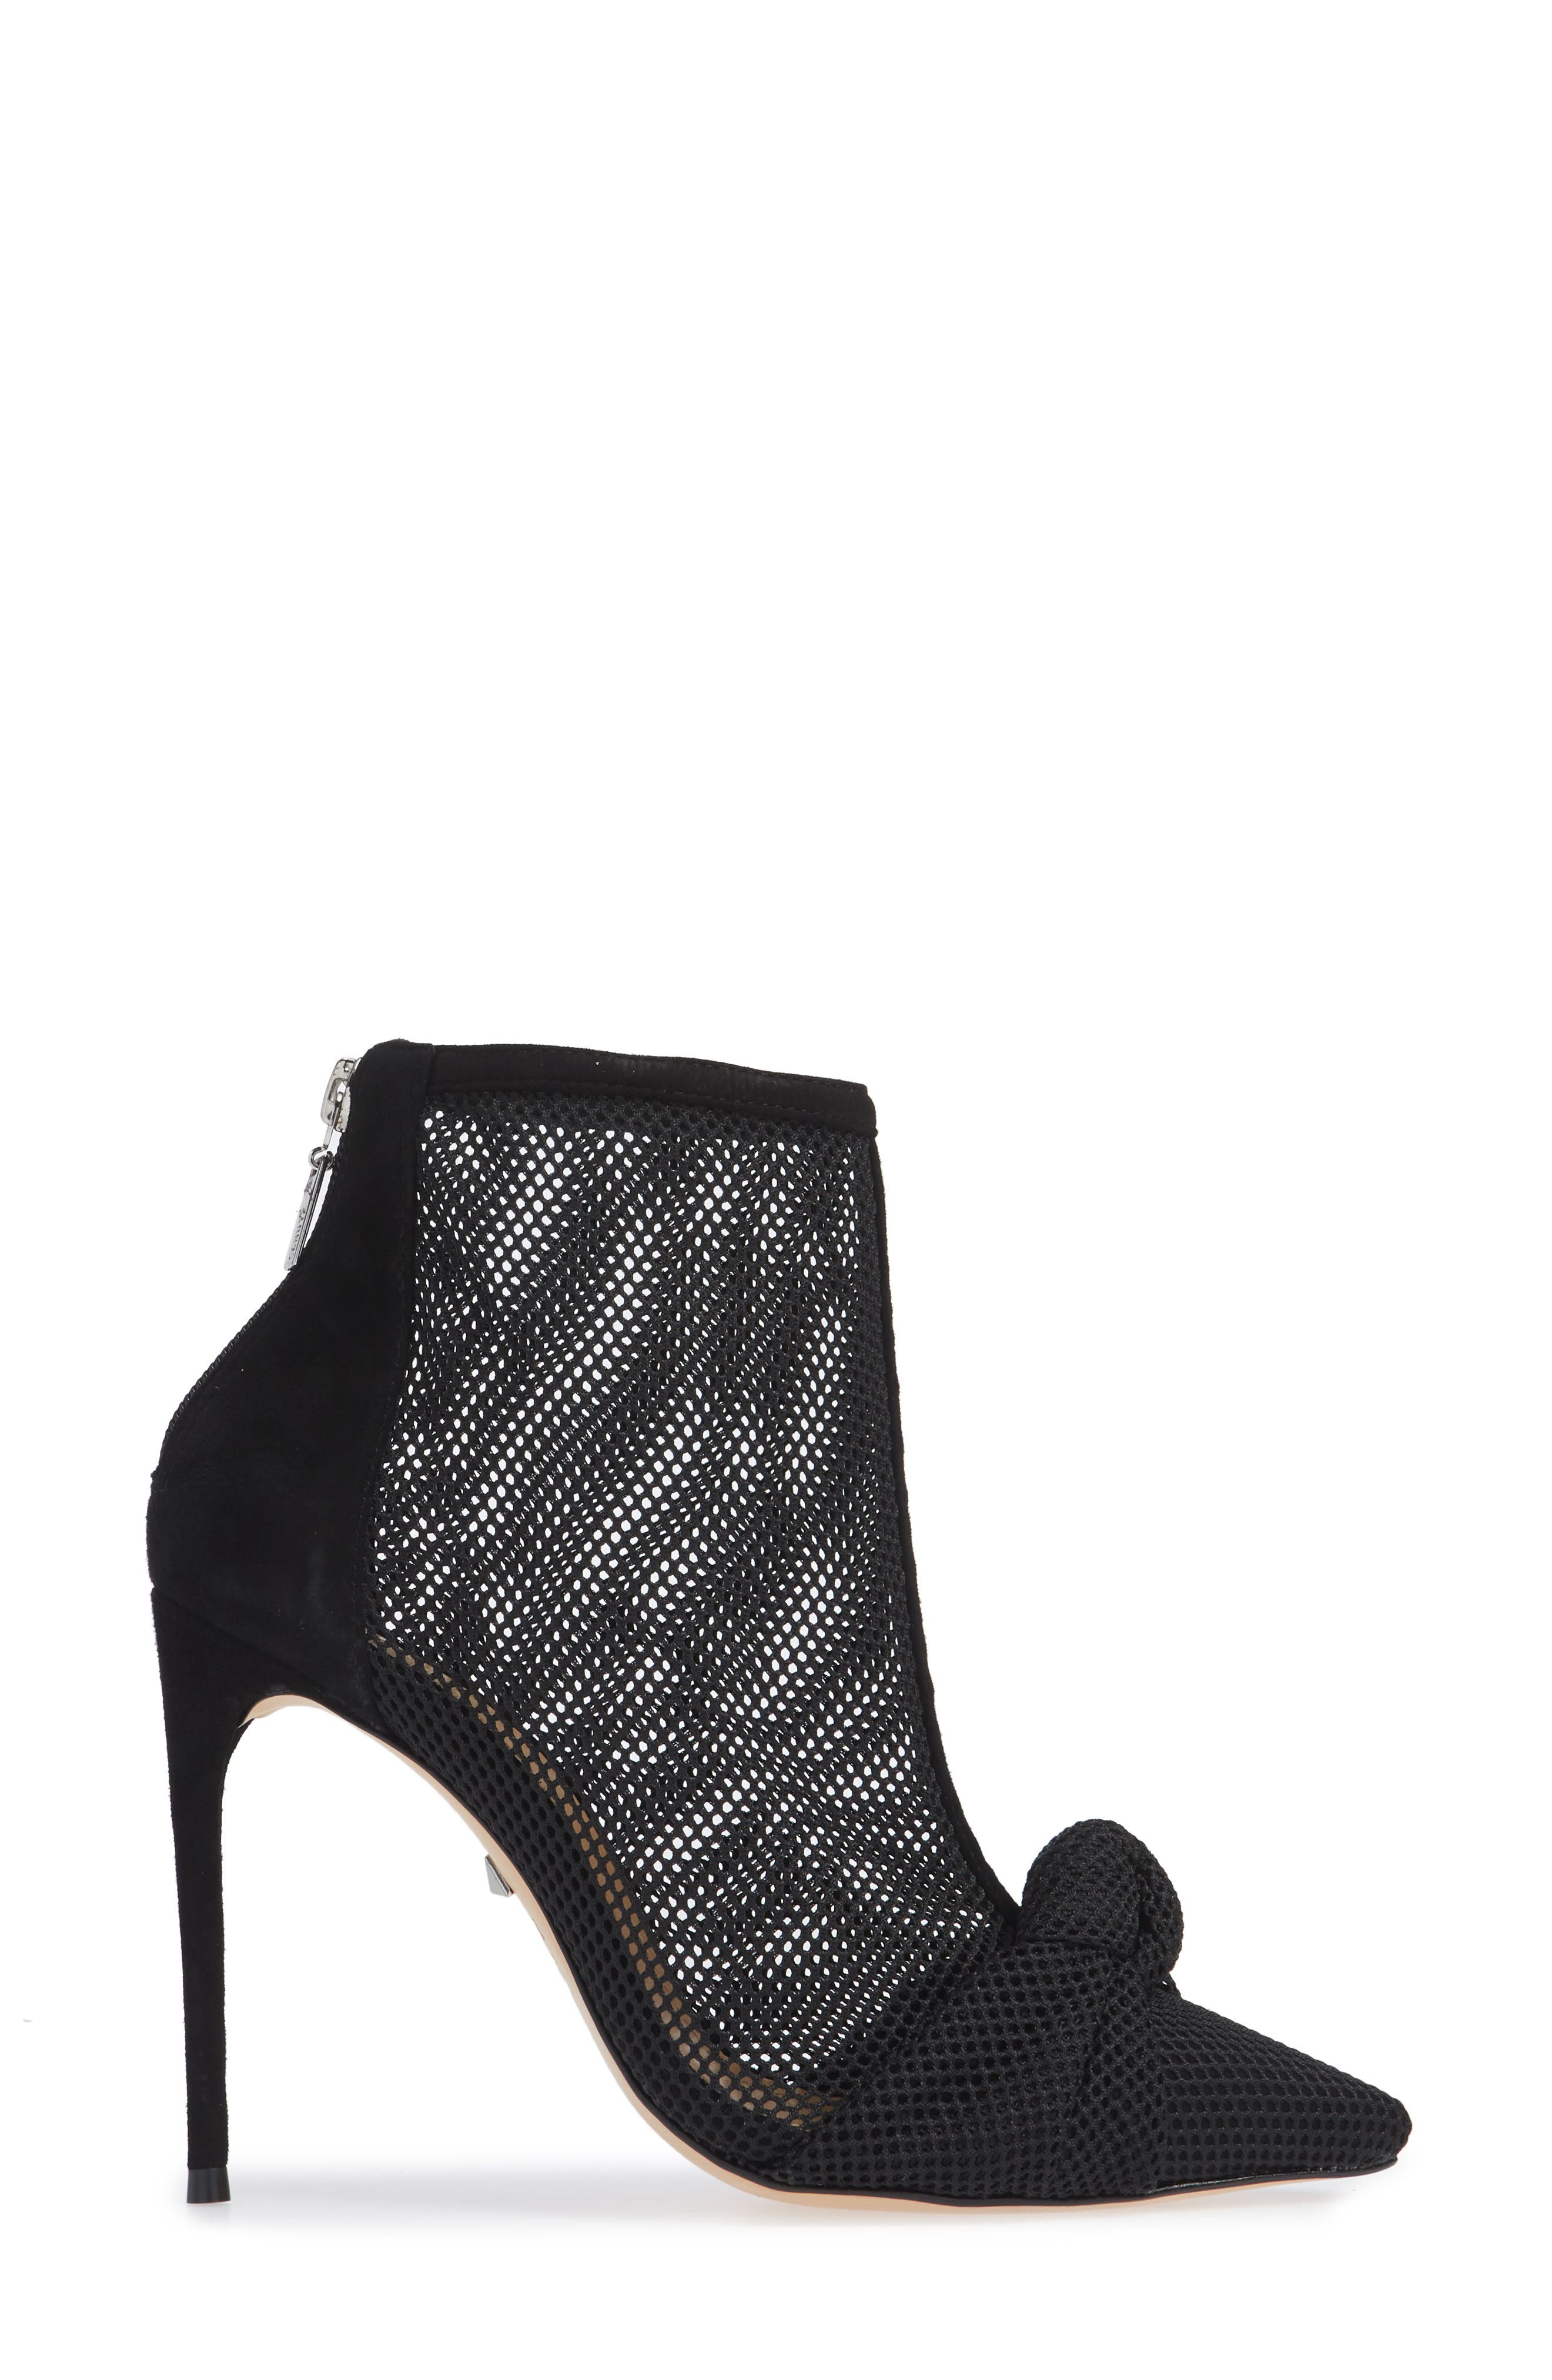 Kessie Pointy Toe Boot,                             Alternate thumbnail 3, color,                             001